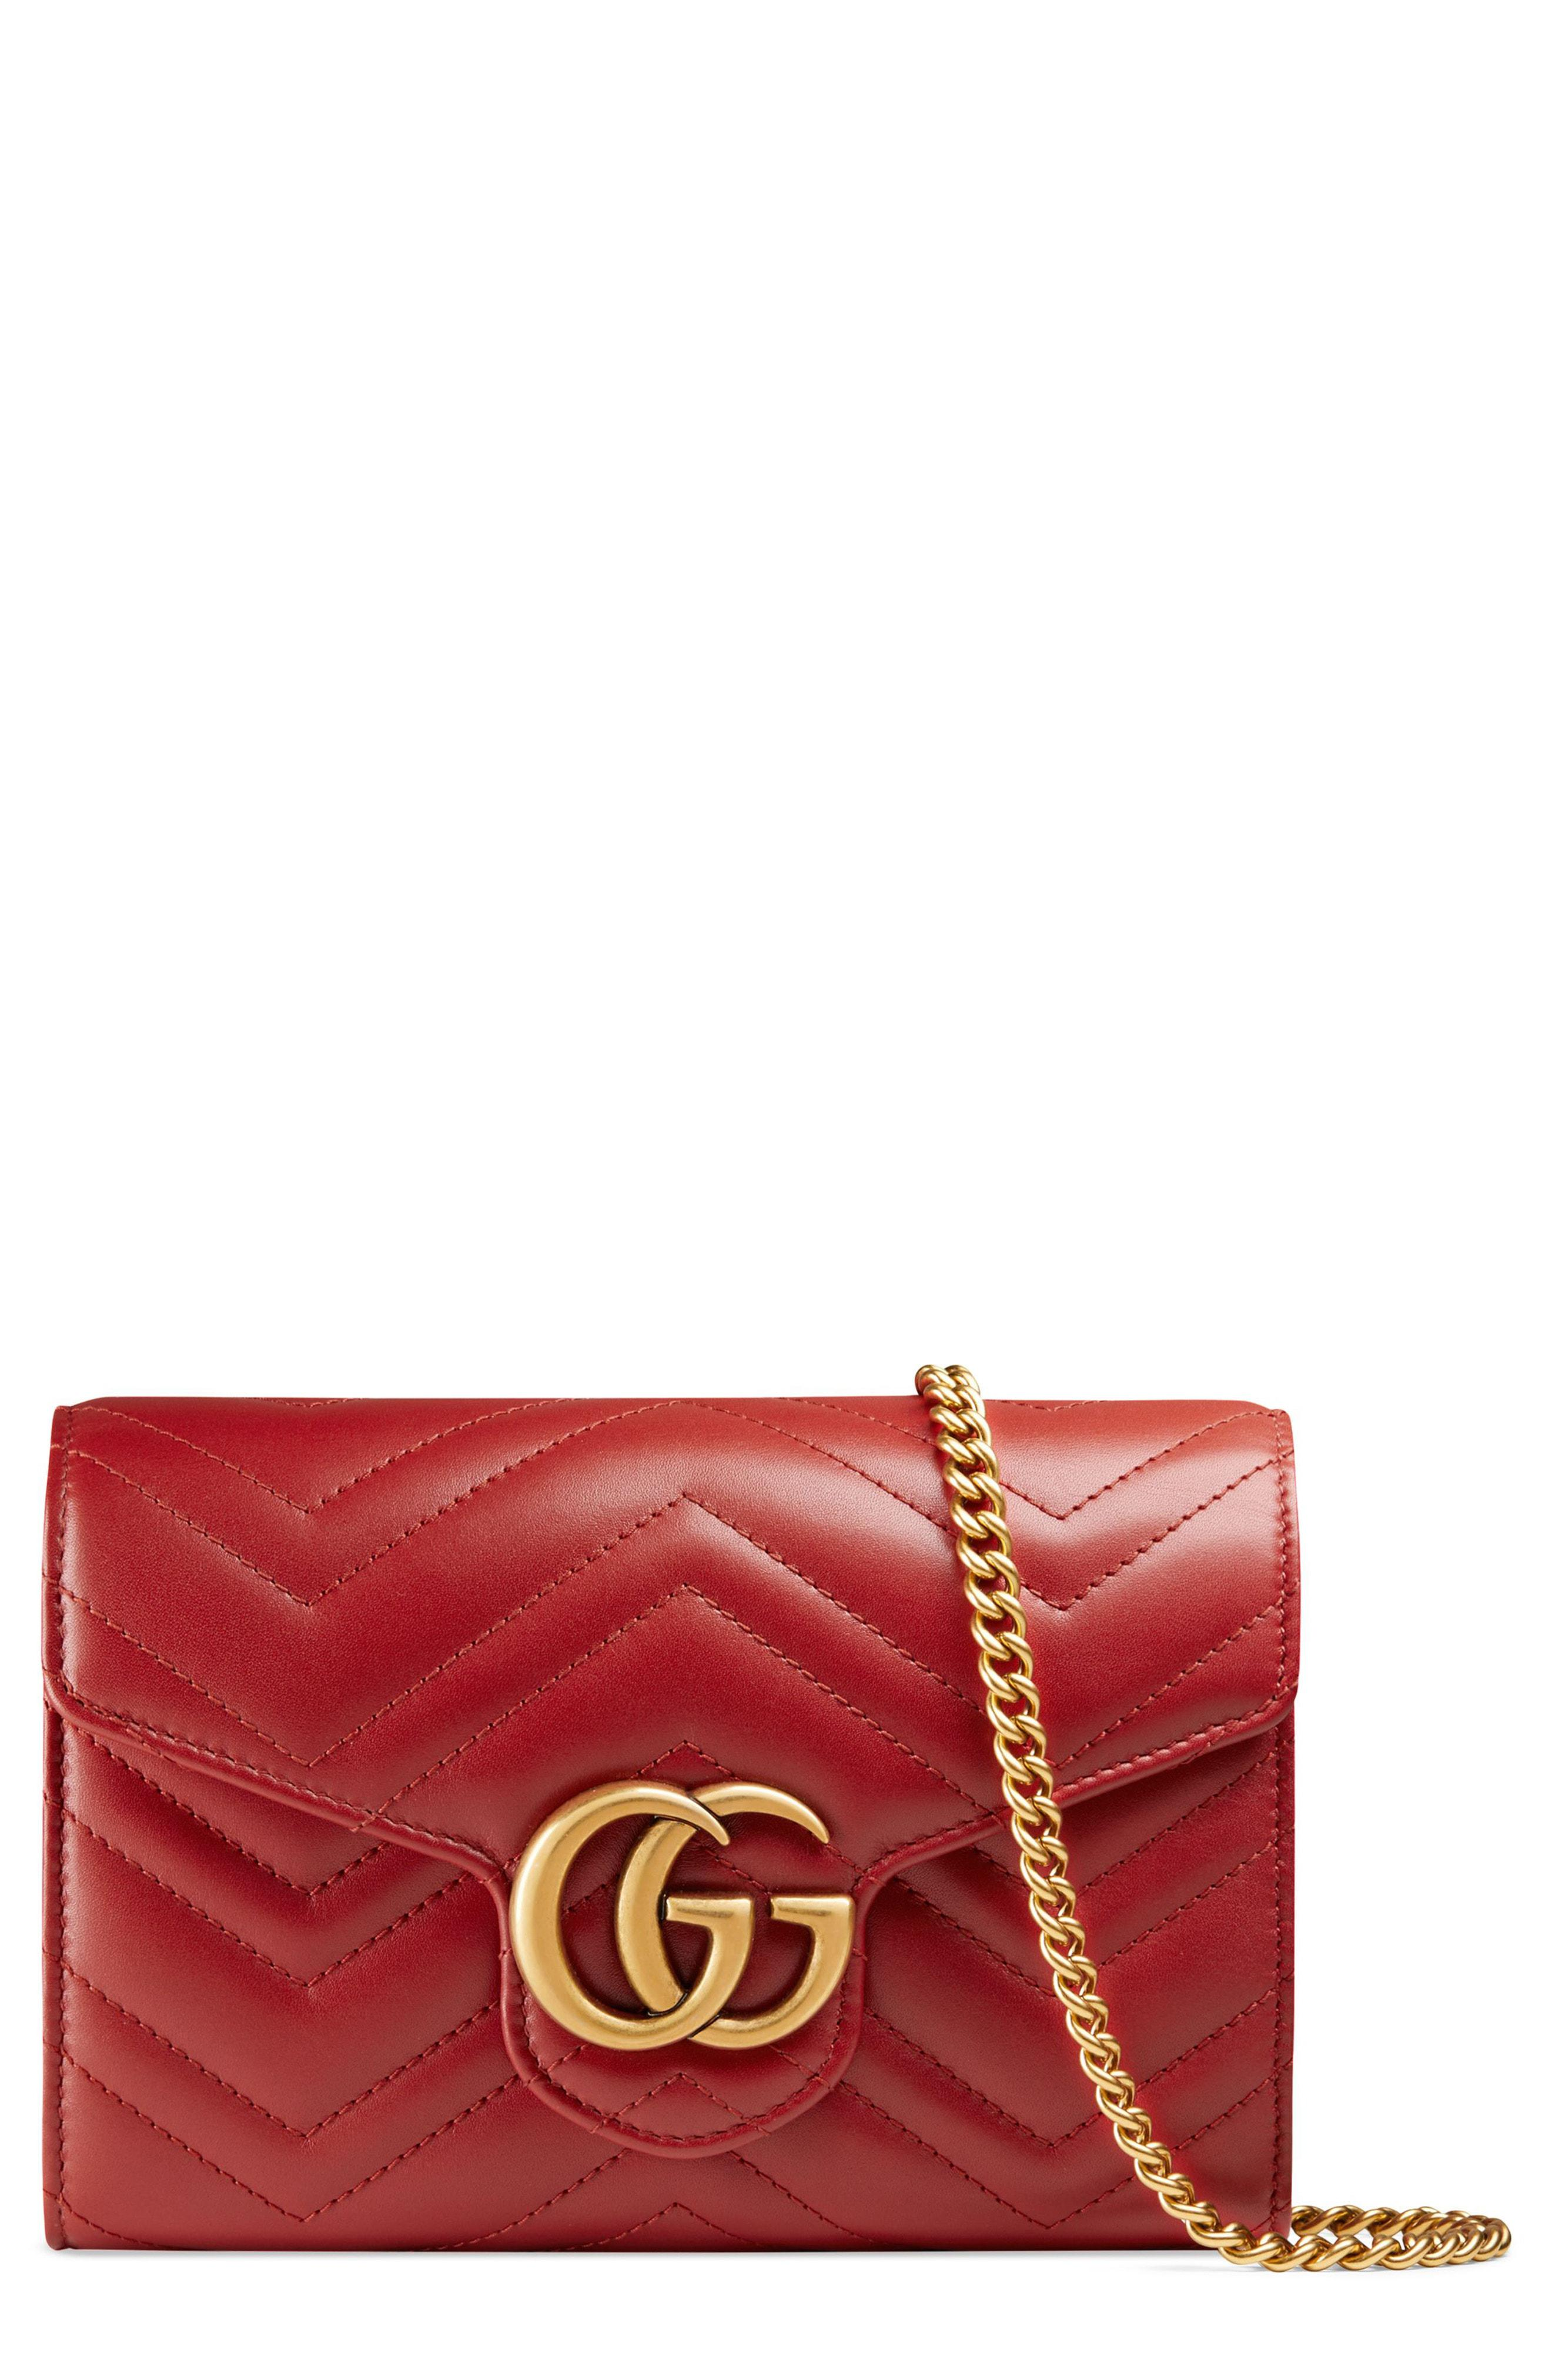 03725e842c2 Lyst - Gucci Gg Marmont Matelasse Leather Wallet On A Chain in Red